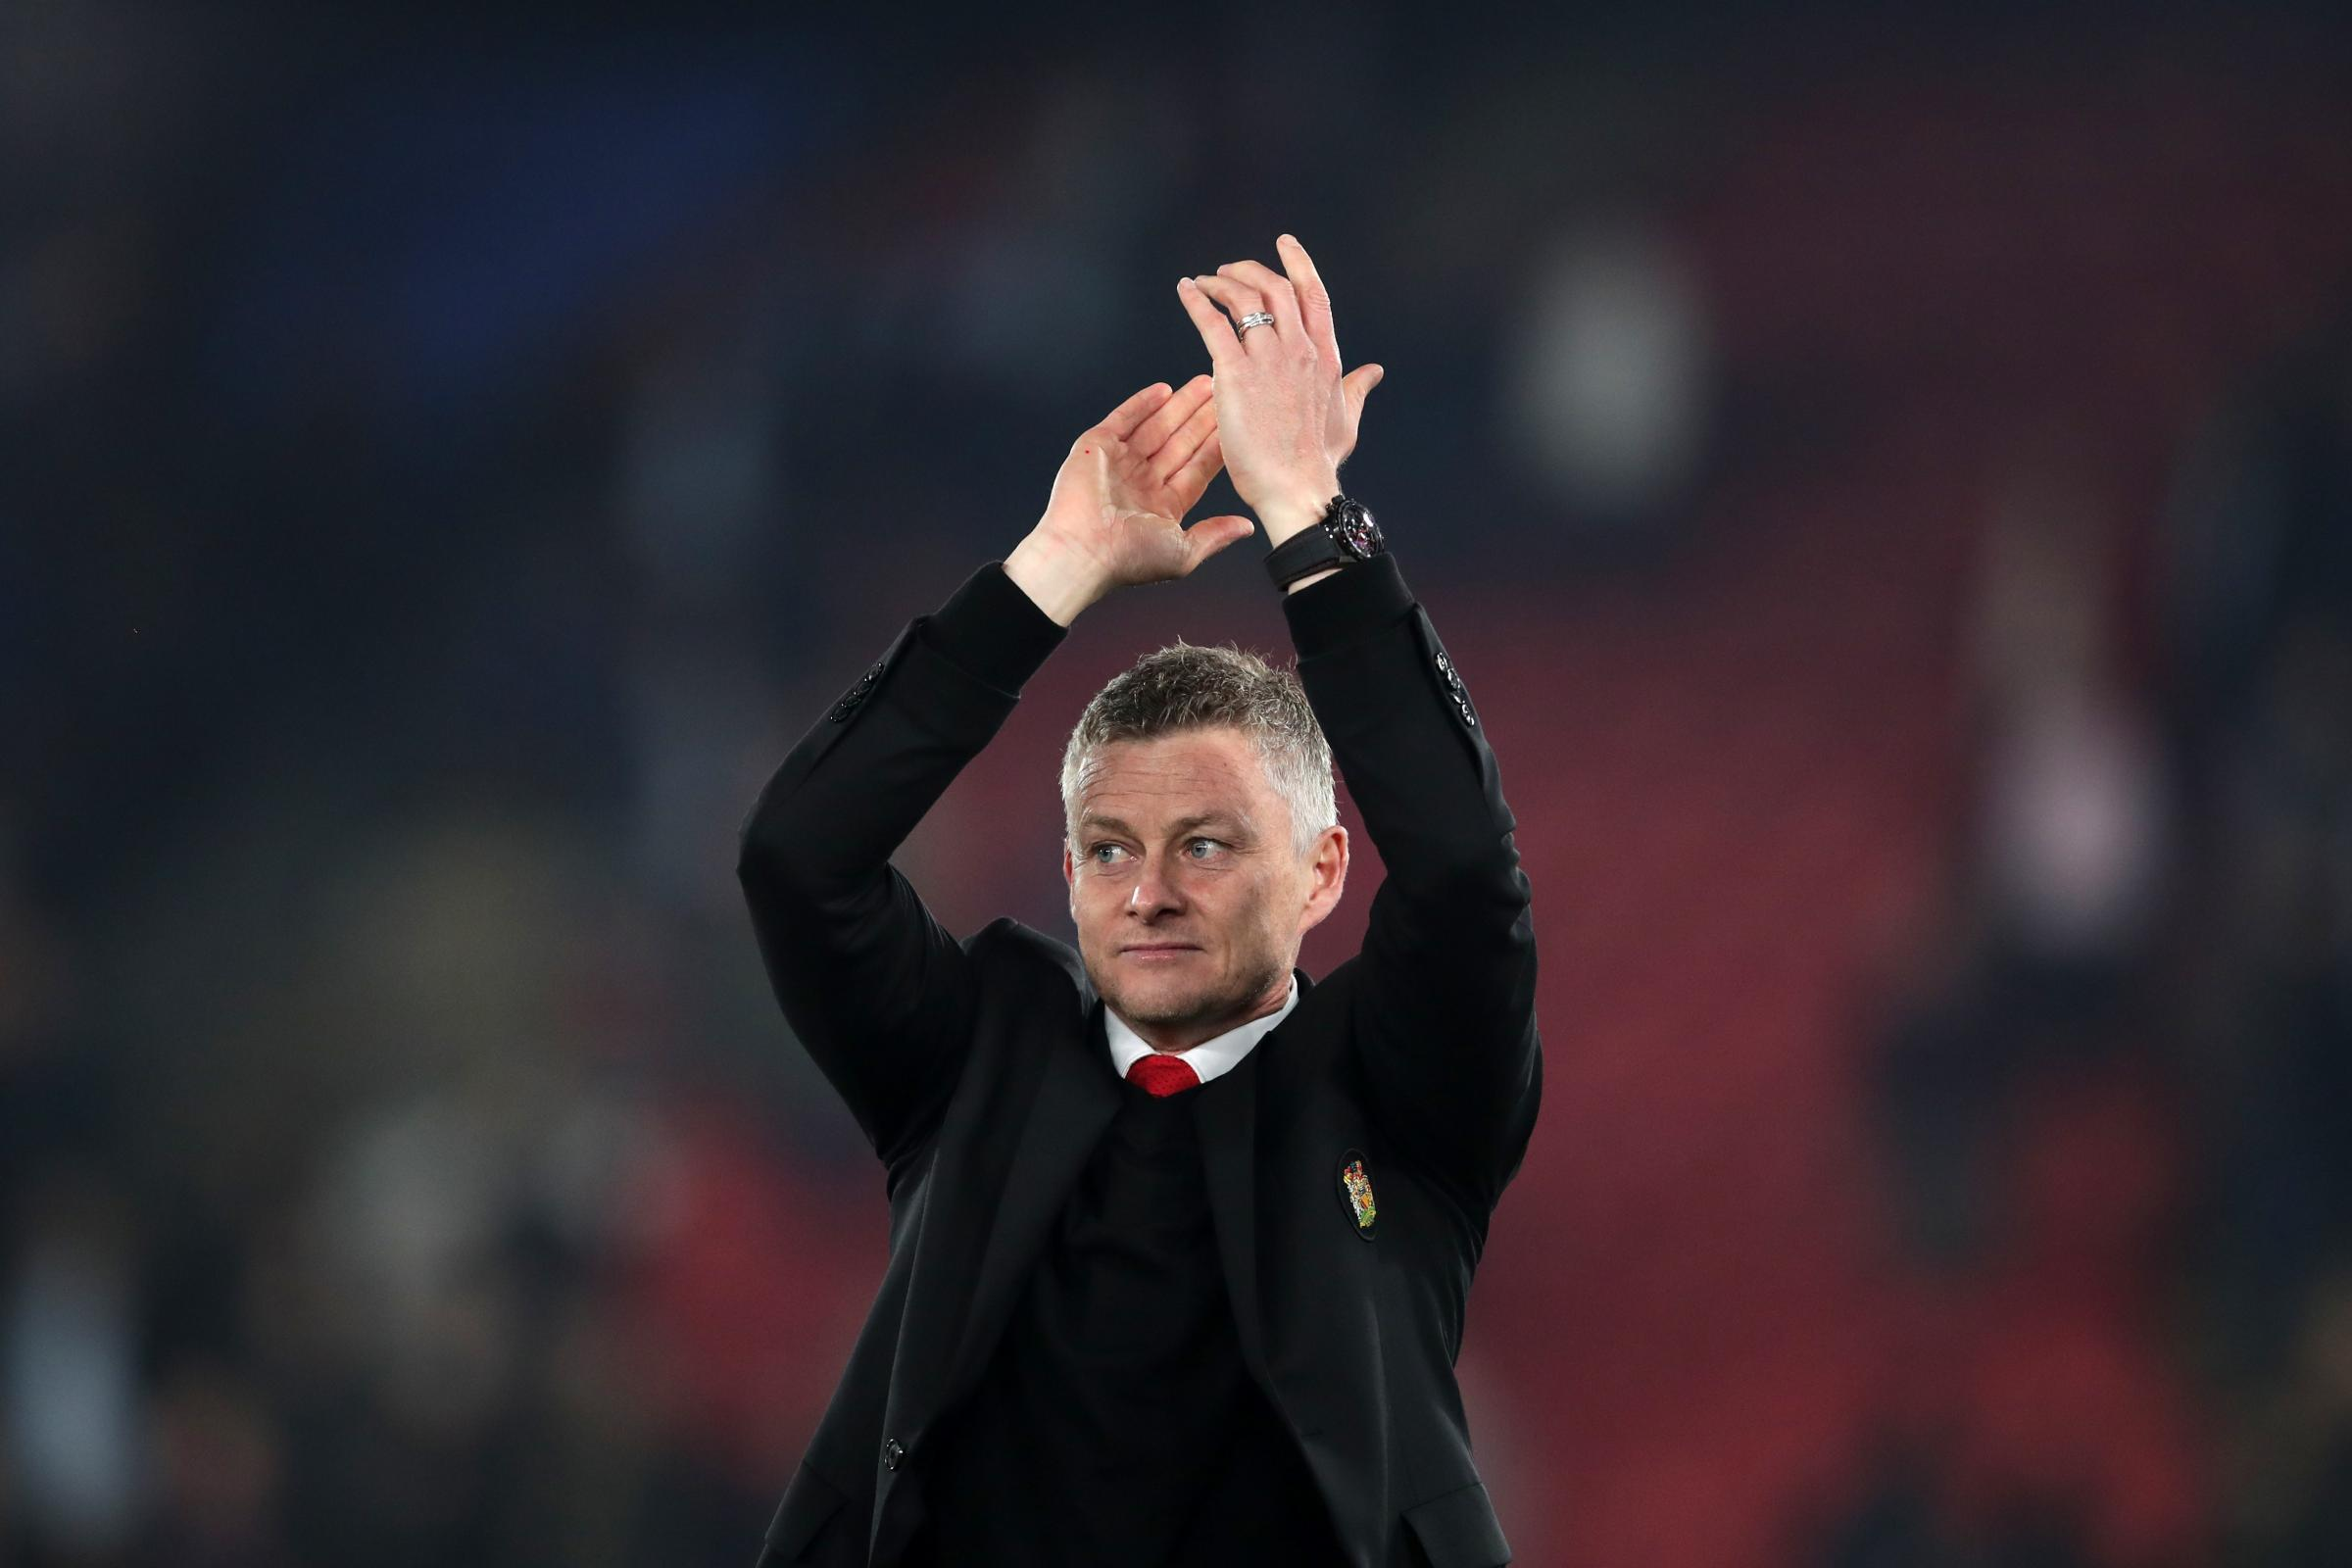 Solskjaer is aware of the need for quality additions to the Manchester United squad